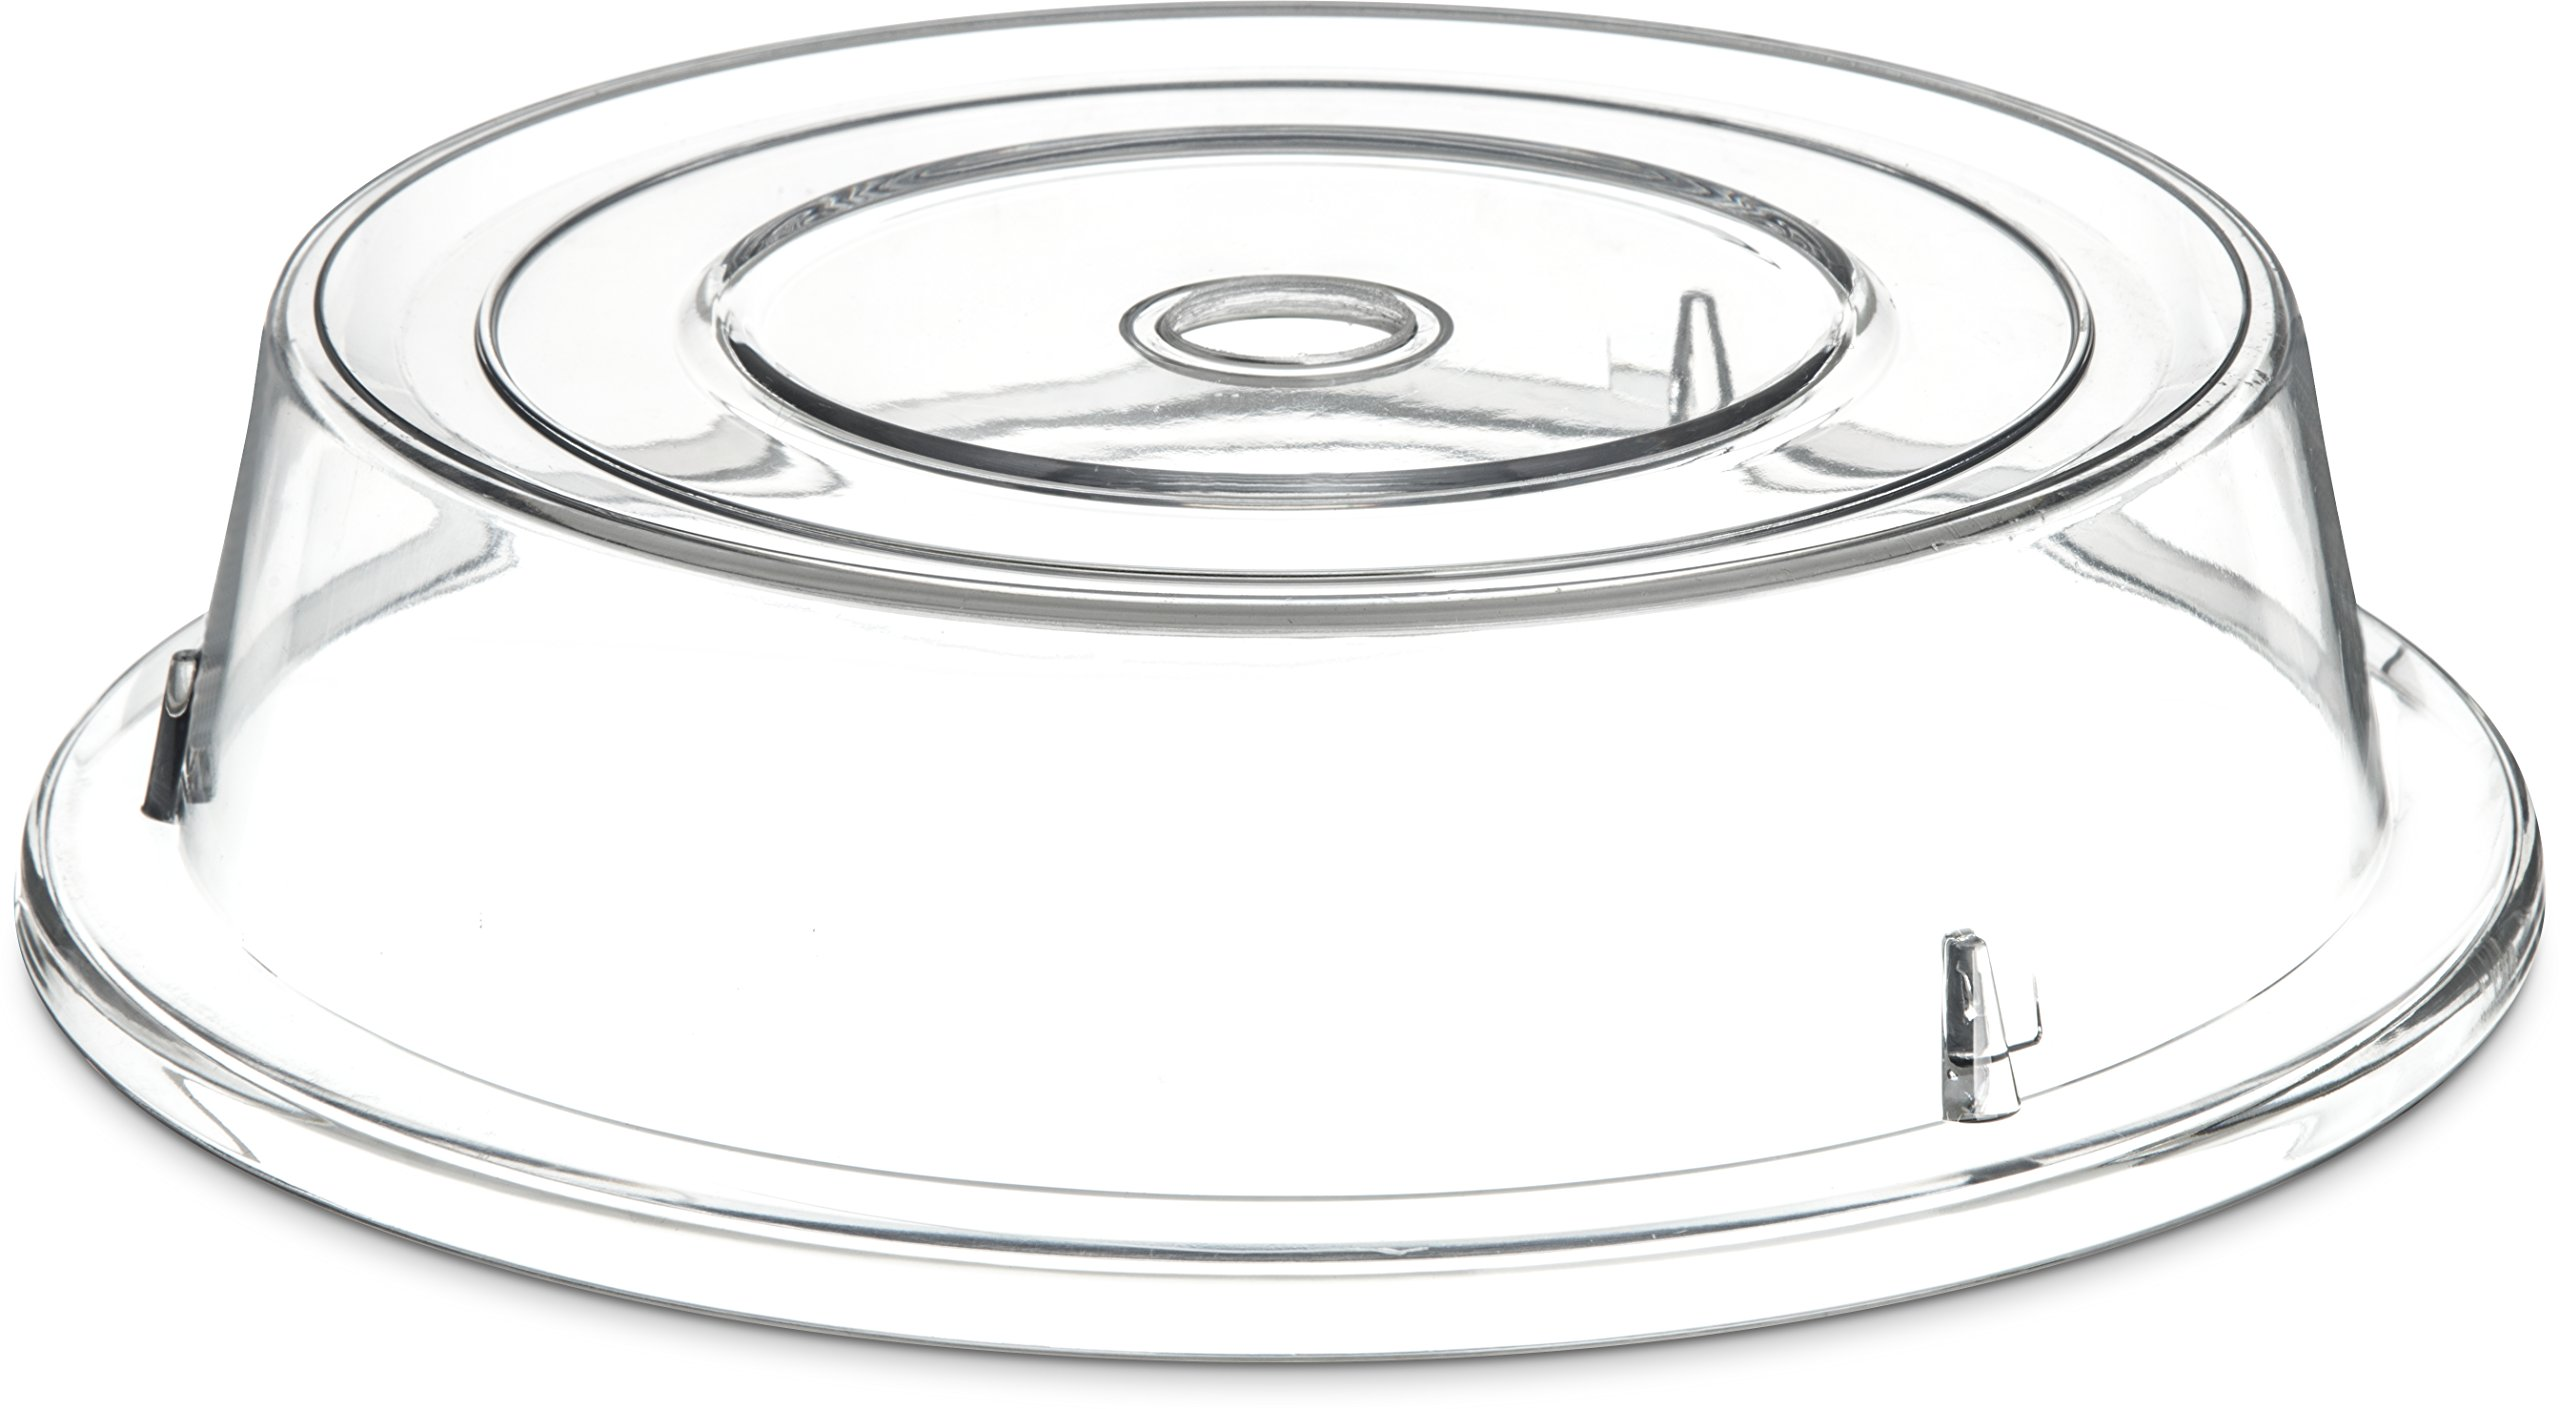 Carlisle 198907 Polycarbonate Plate Cover, 10.6'' Bottom Diameter x 3'' Height, Clear (Case of 12)